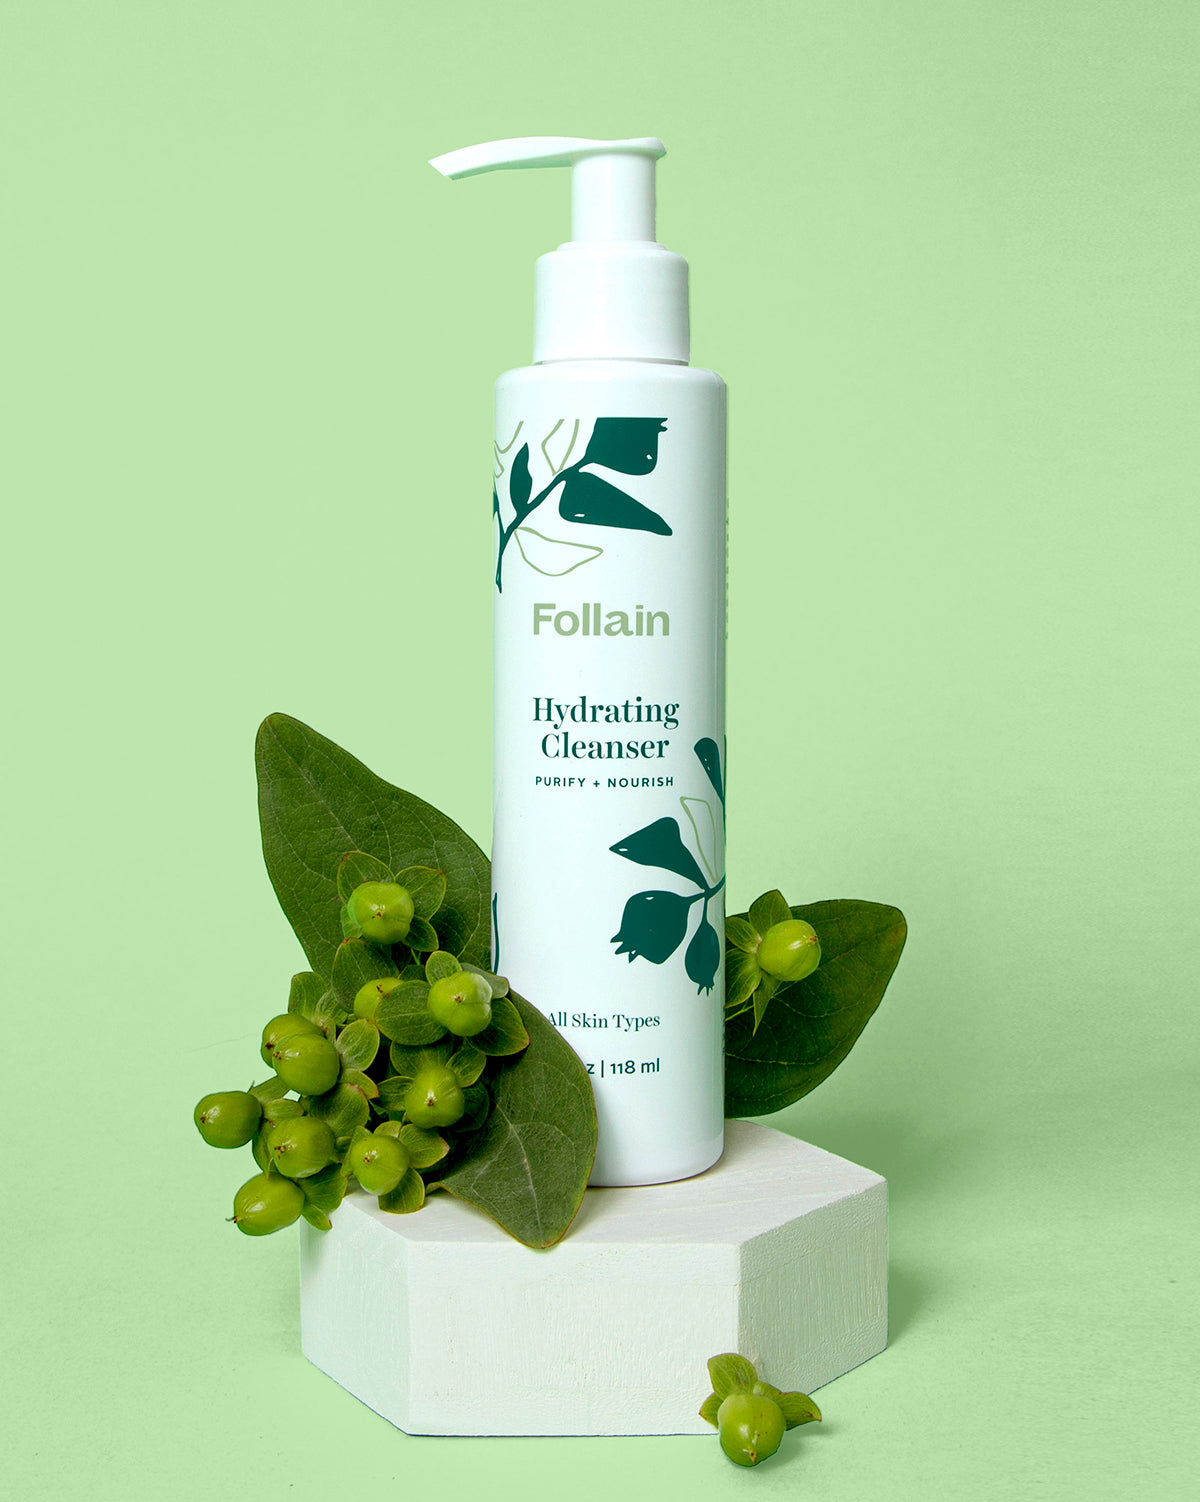 Hydrating Cleanser: Purify + Nourish by Follain #7